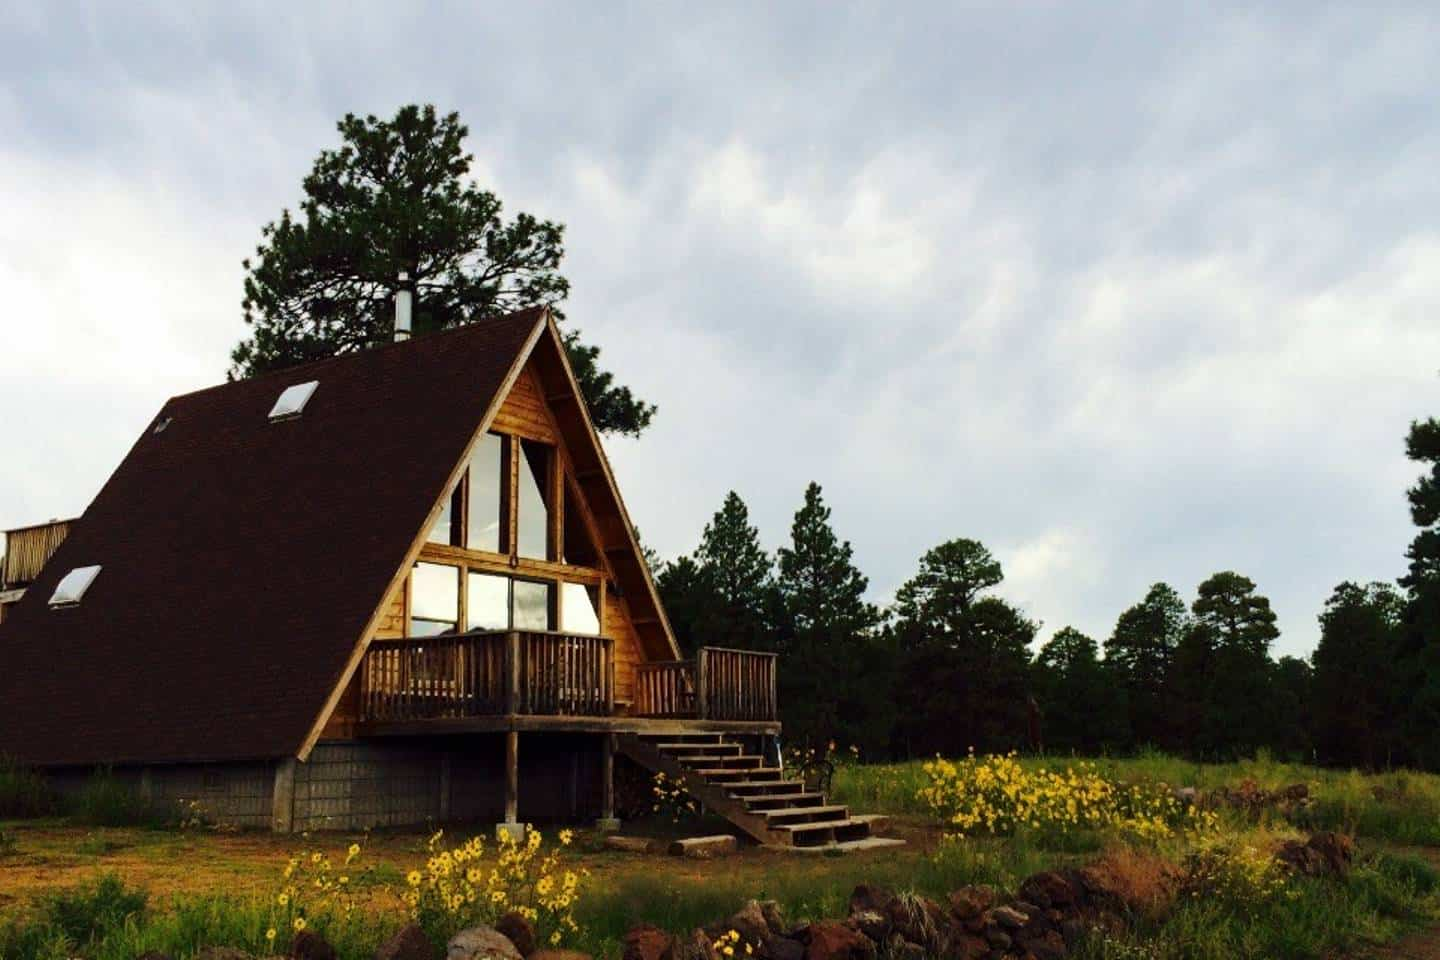 A-Frame Cabin AirBnb on my California Travel Bucket List